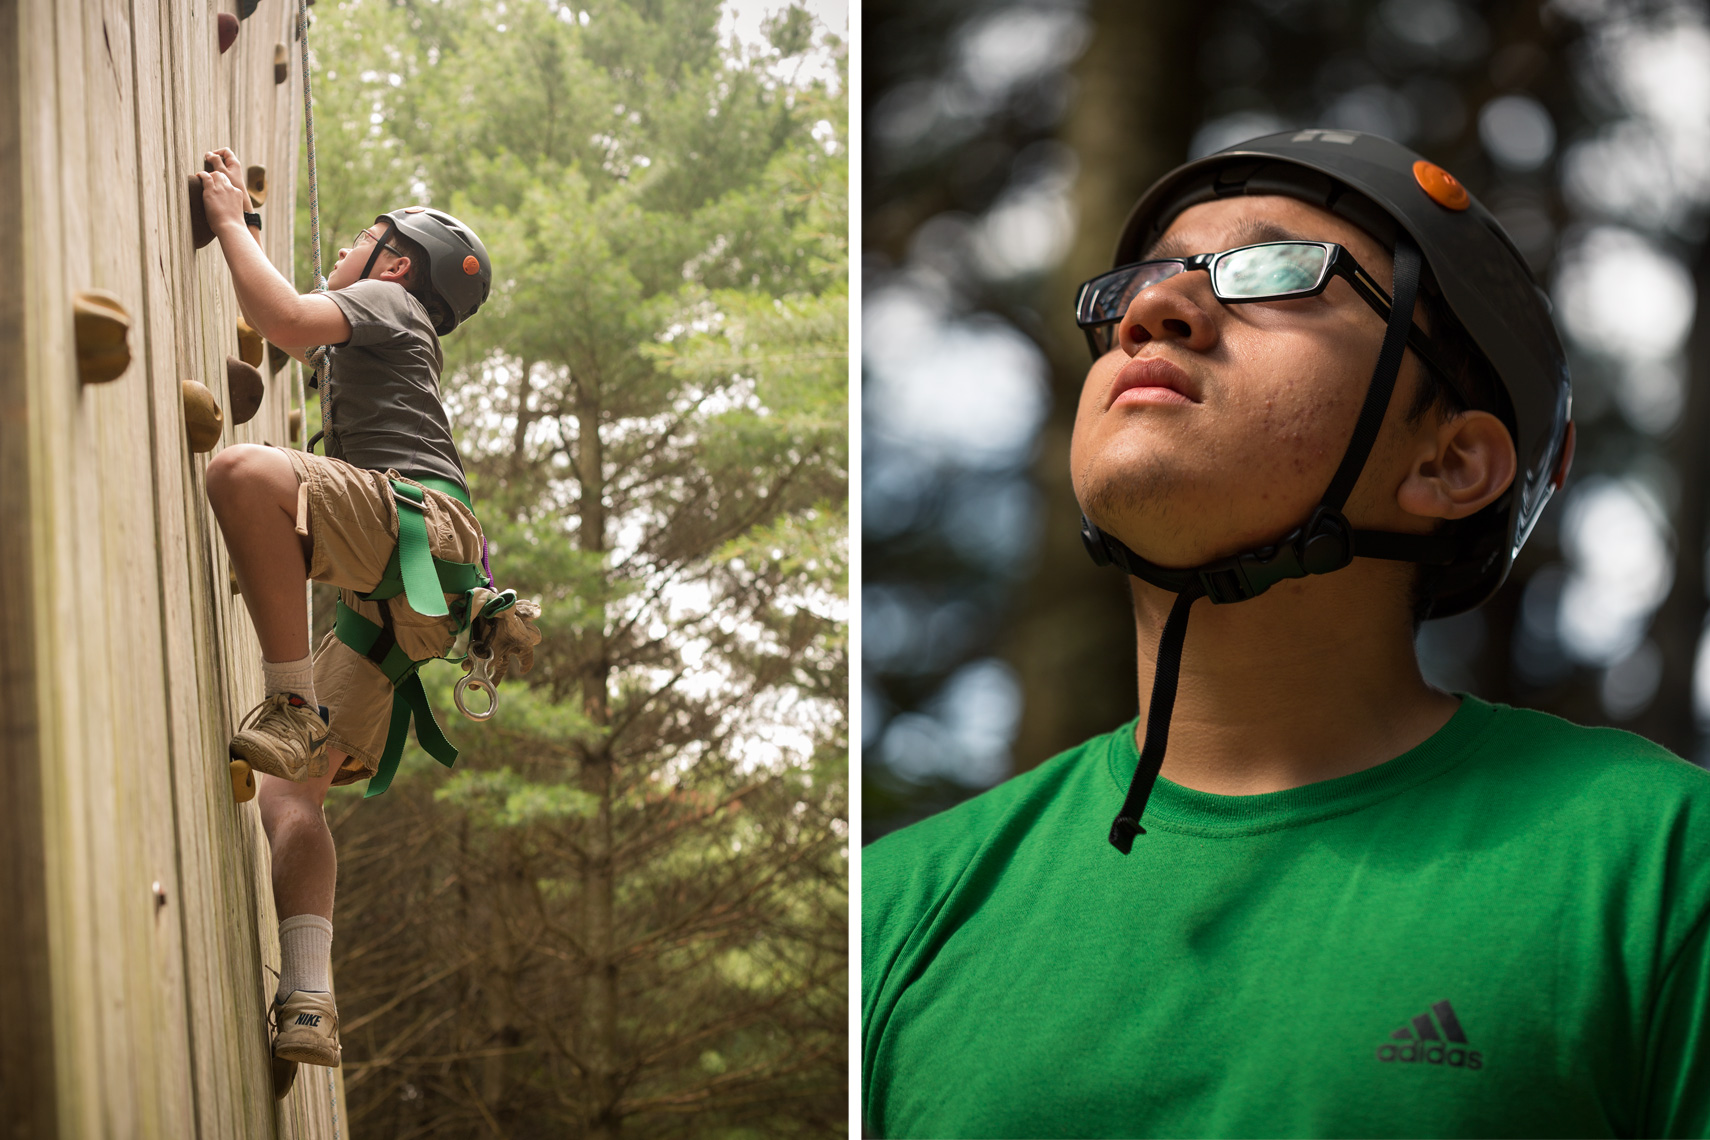 boy scouts rock climbing with helmets, washington dc photojournalism